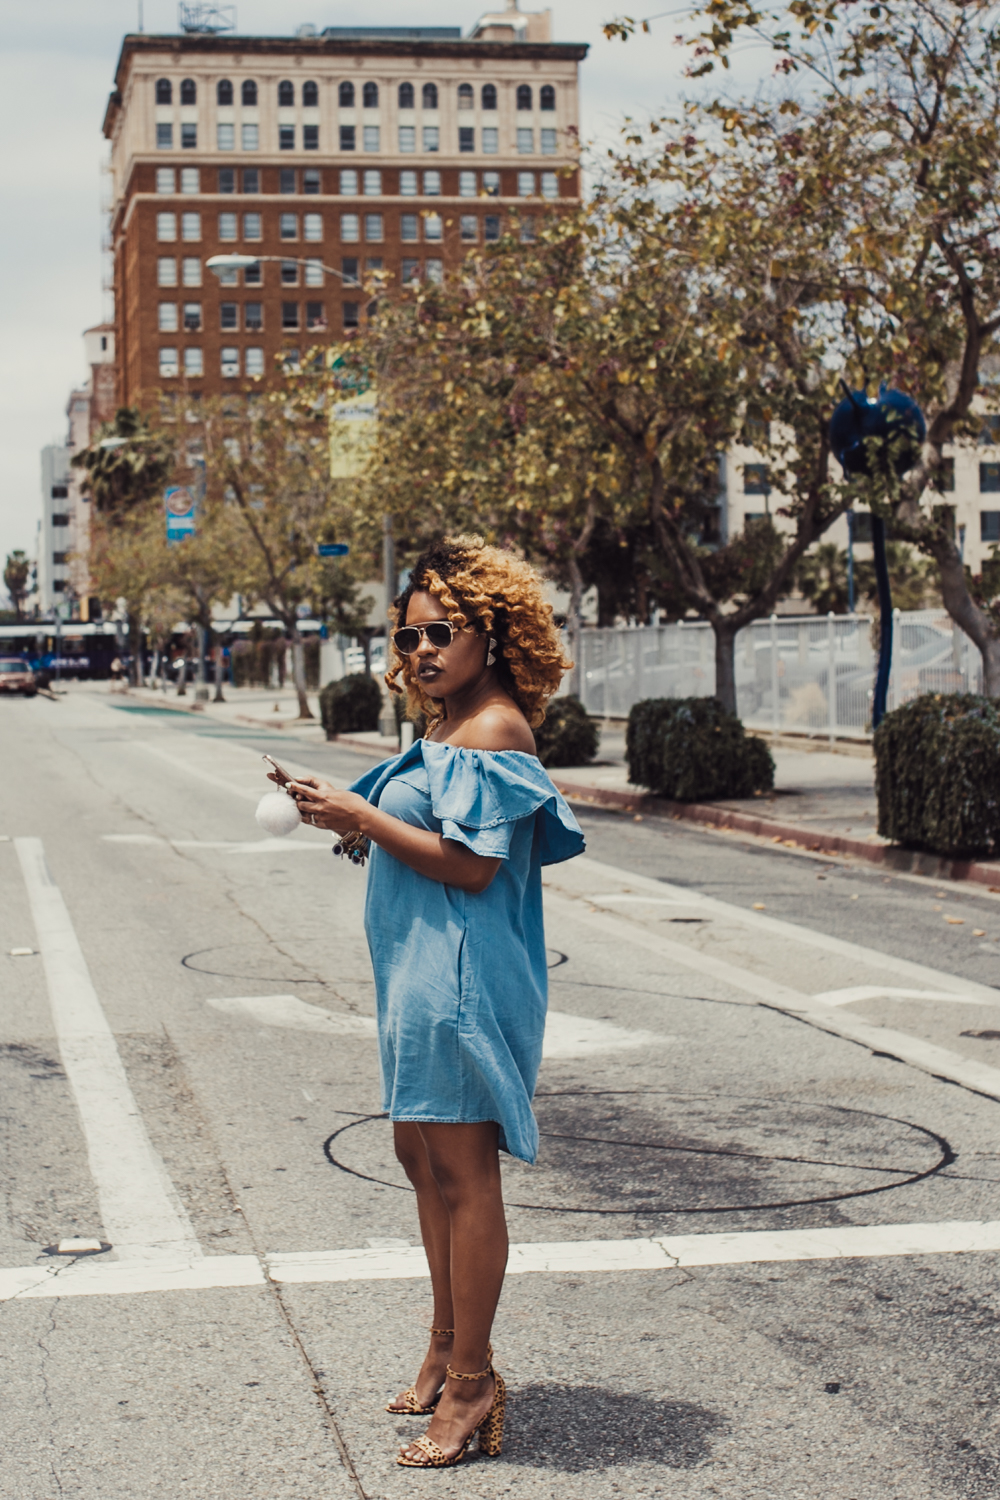 Stopping Traffic in Denim Zara Dress + Leopard Heels | https://thehautemommie.com/denim-zara-dressleopard-heels/